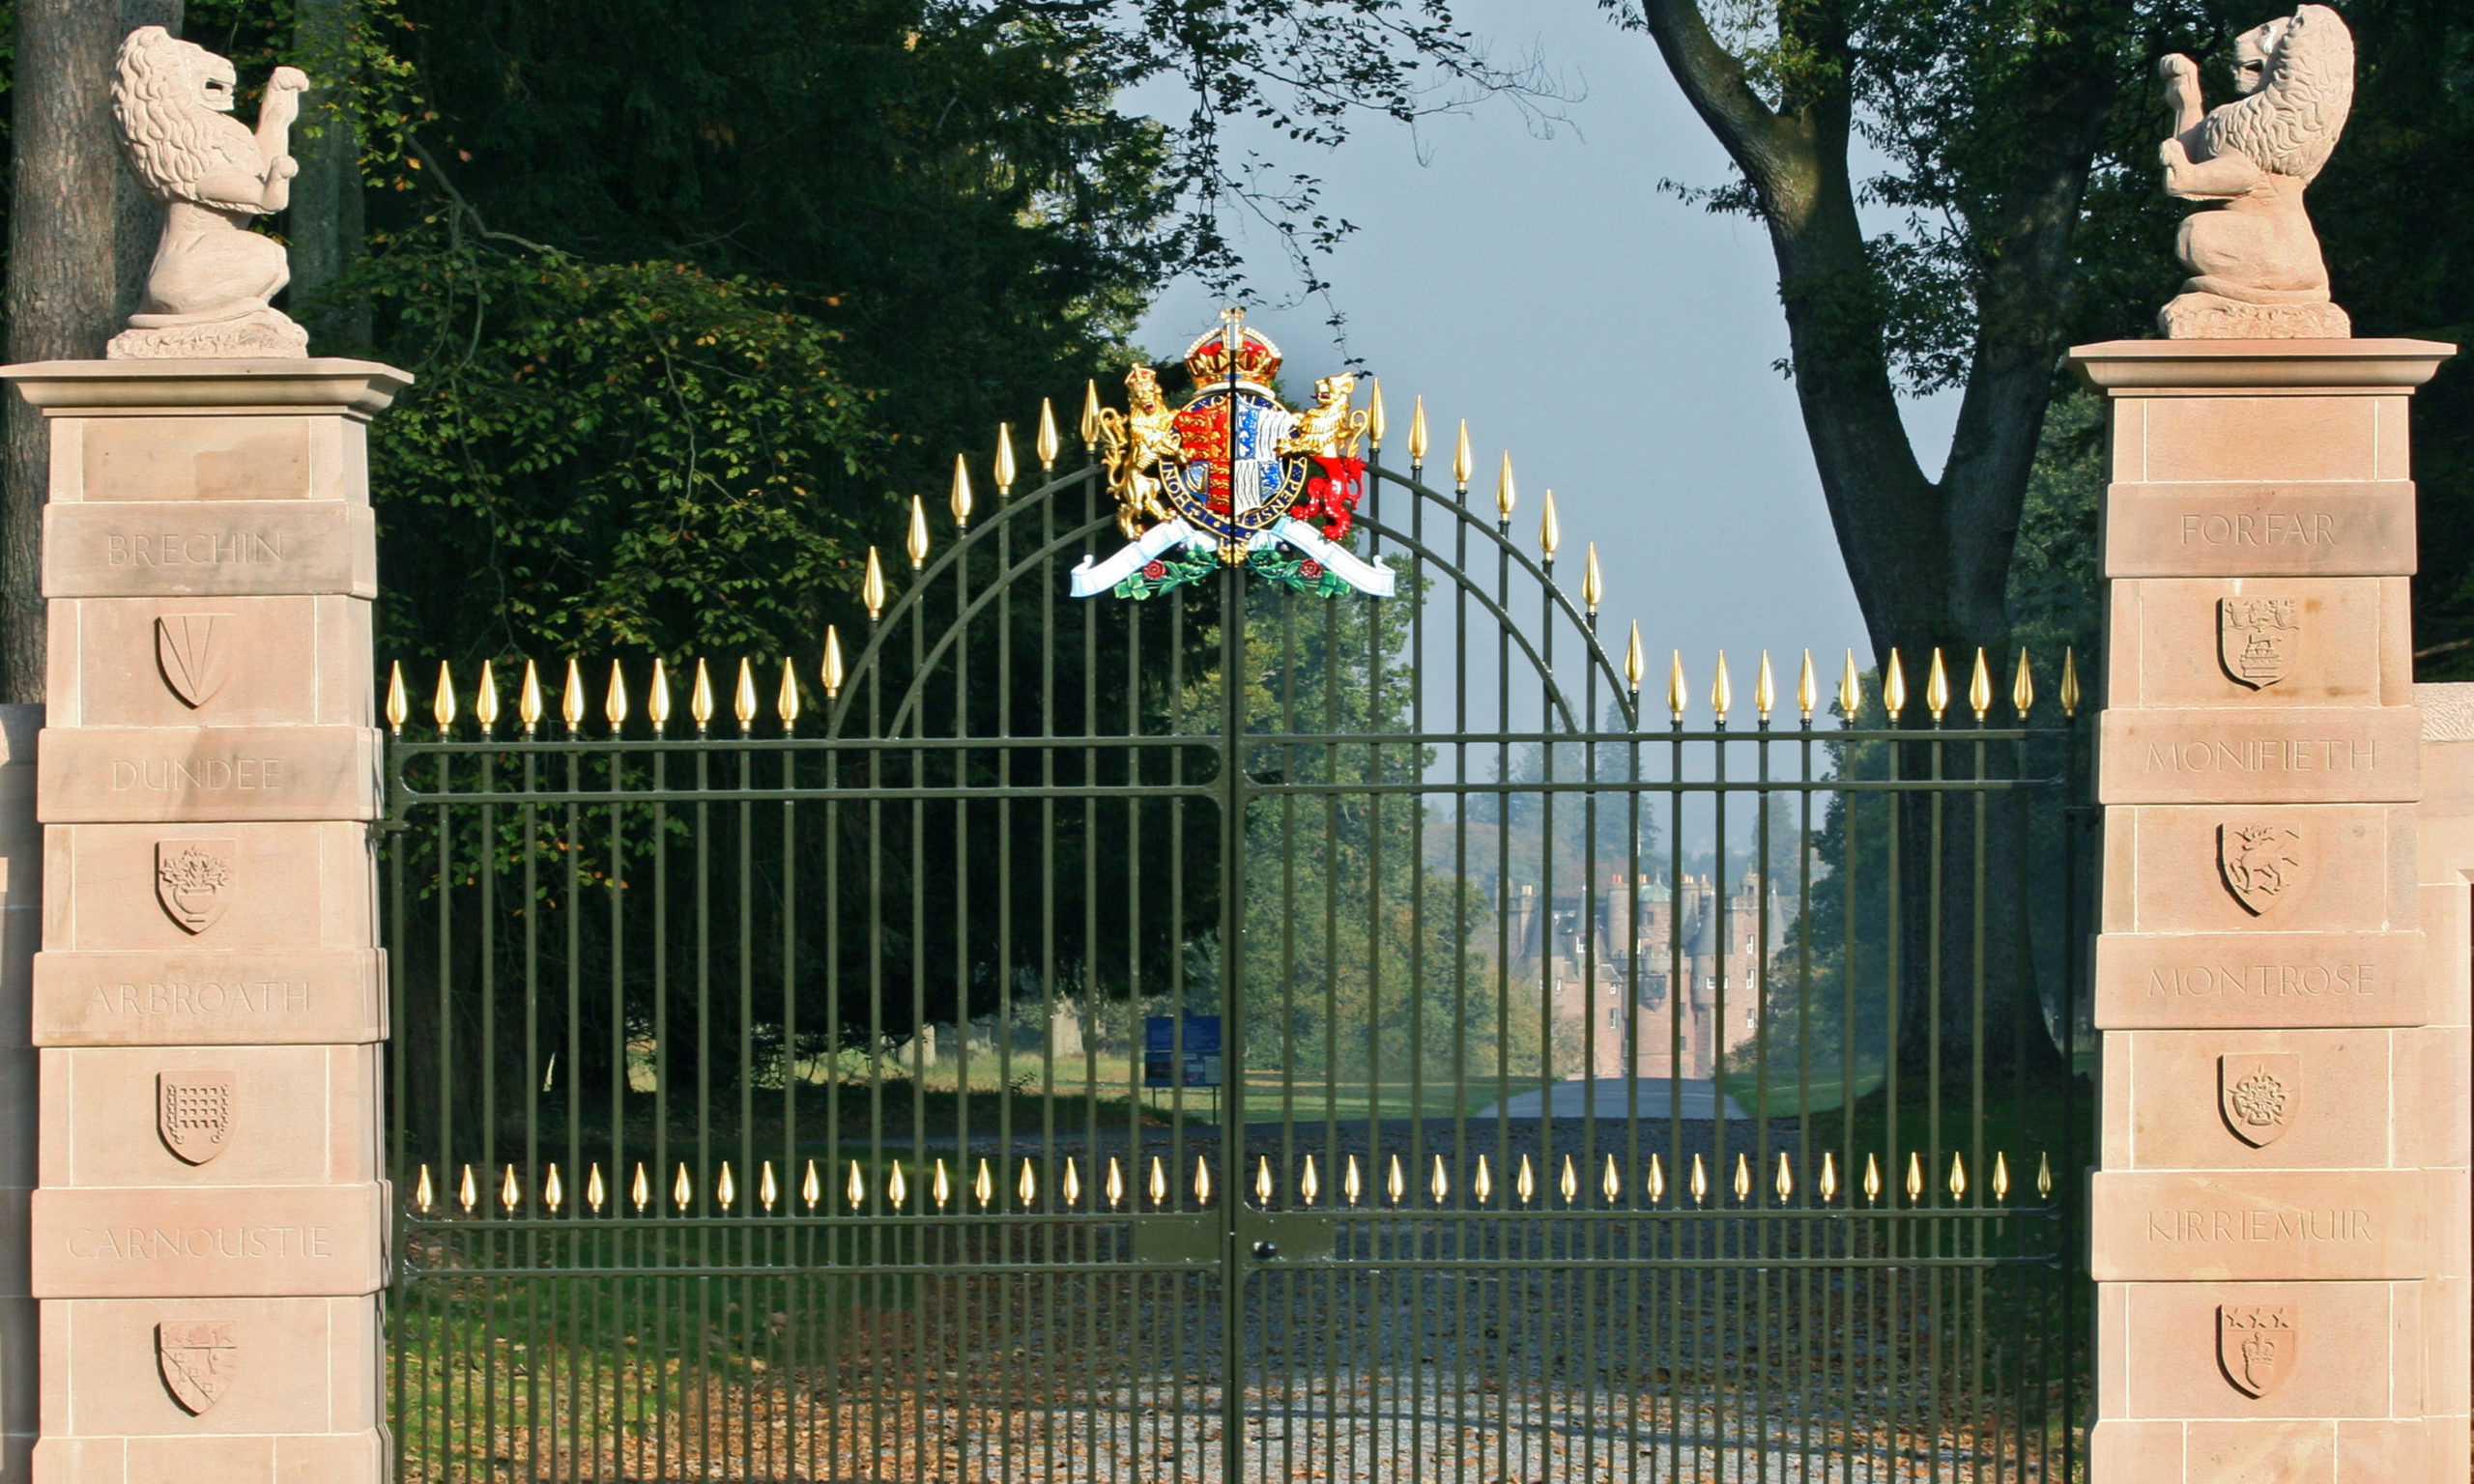 The Queen Mother Memorial gates at Glamis Castle.